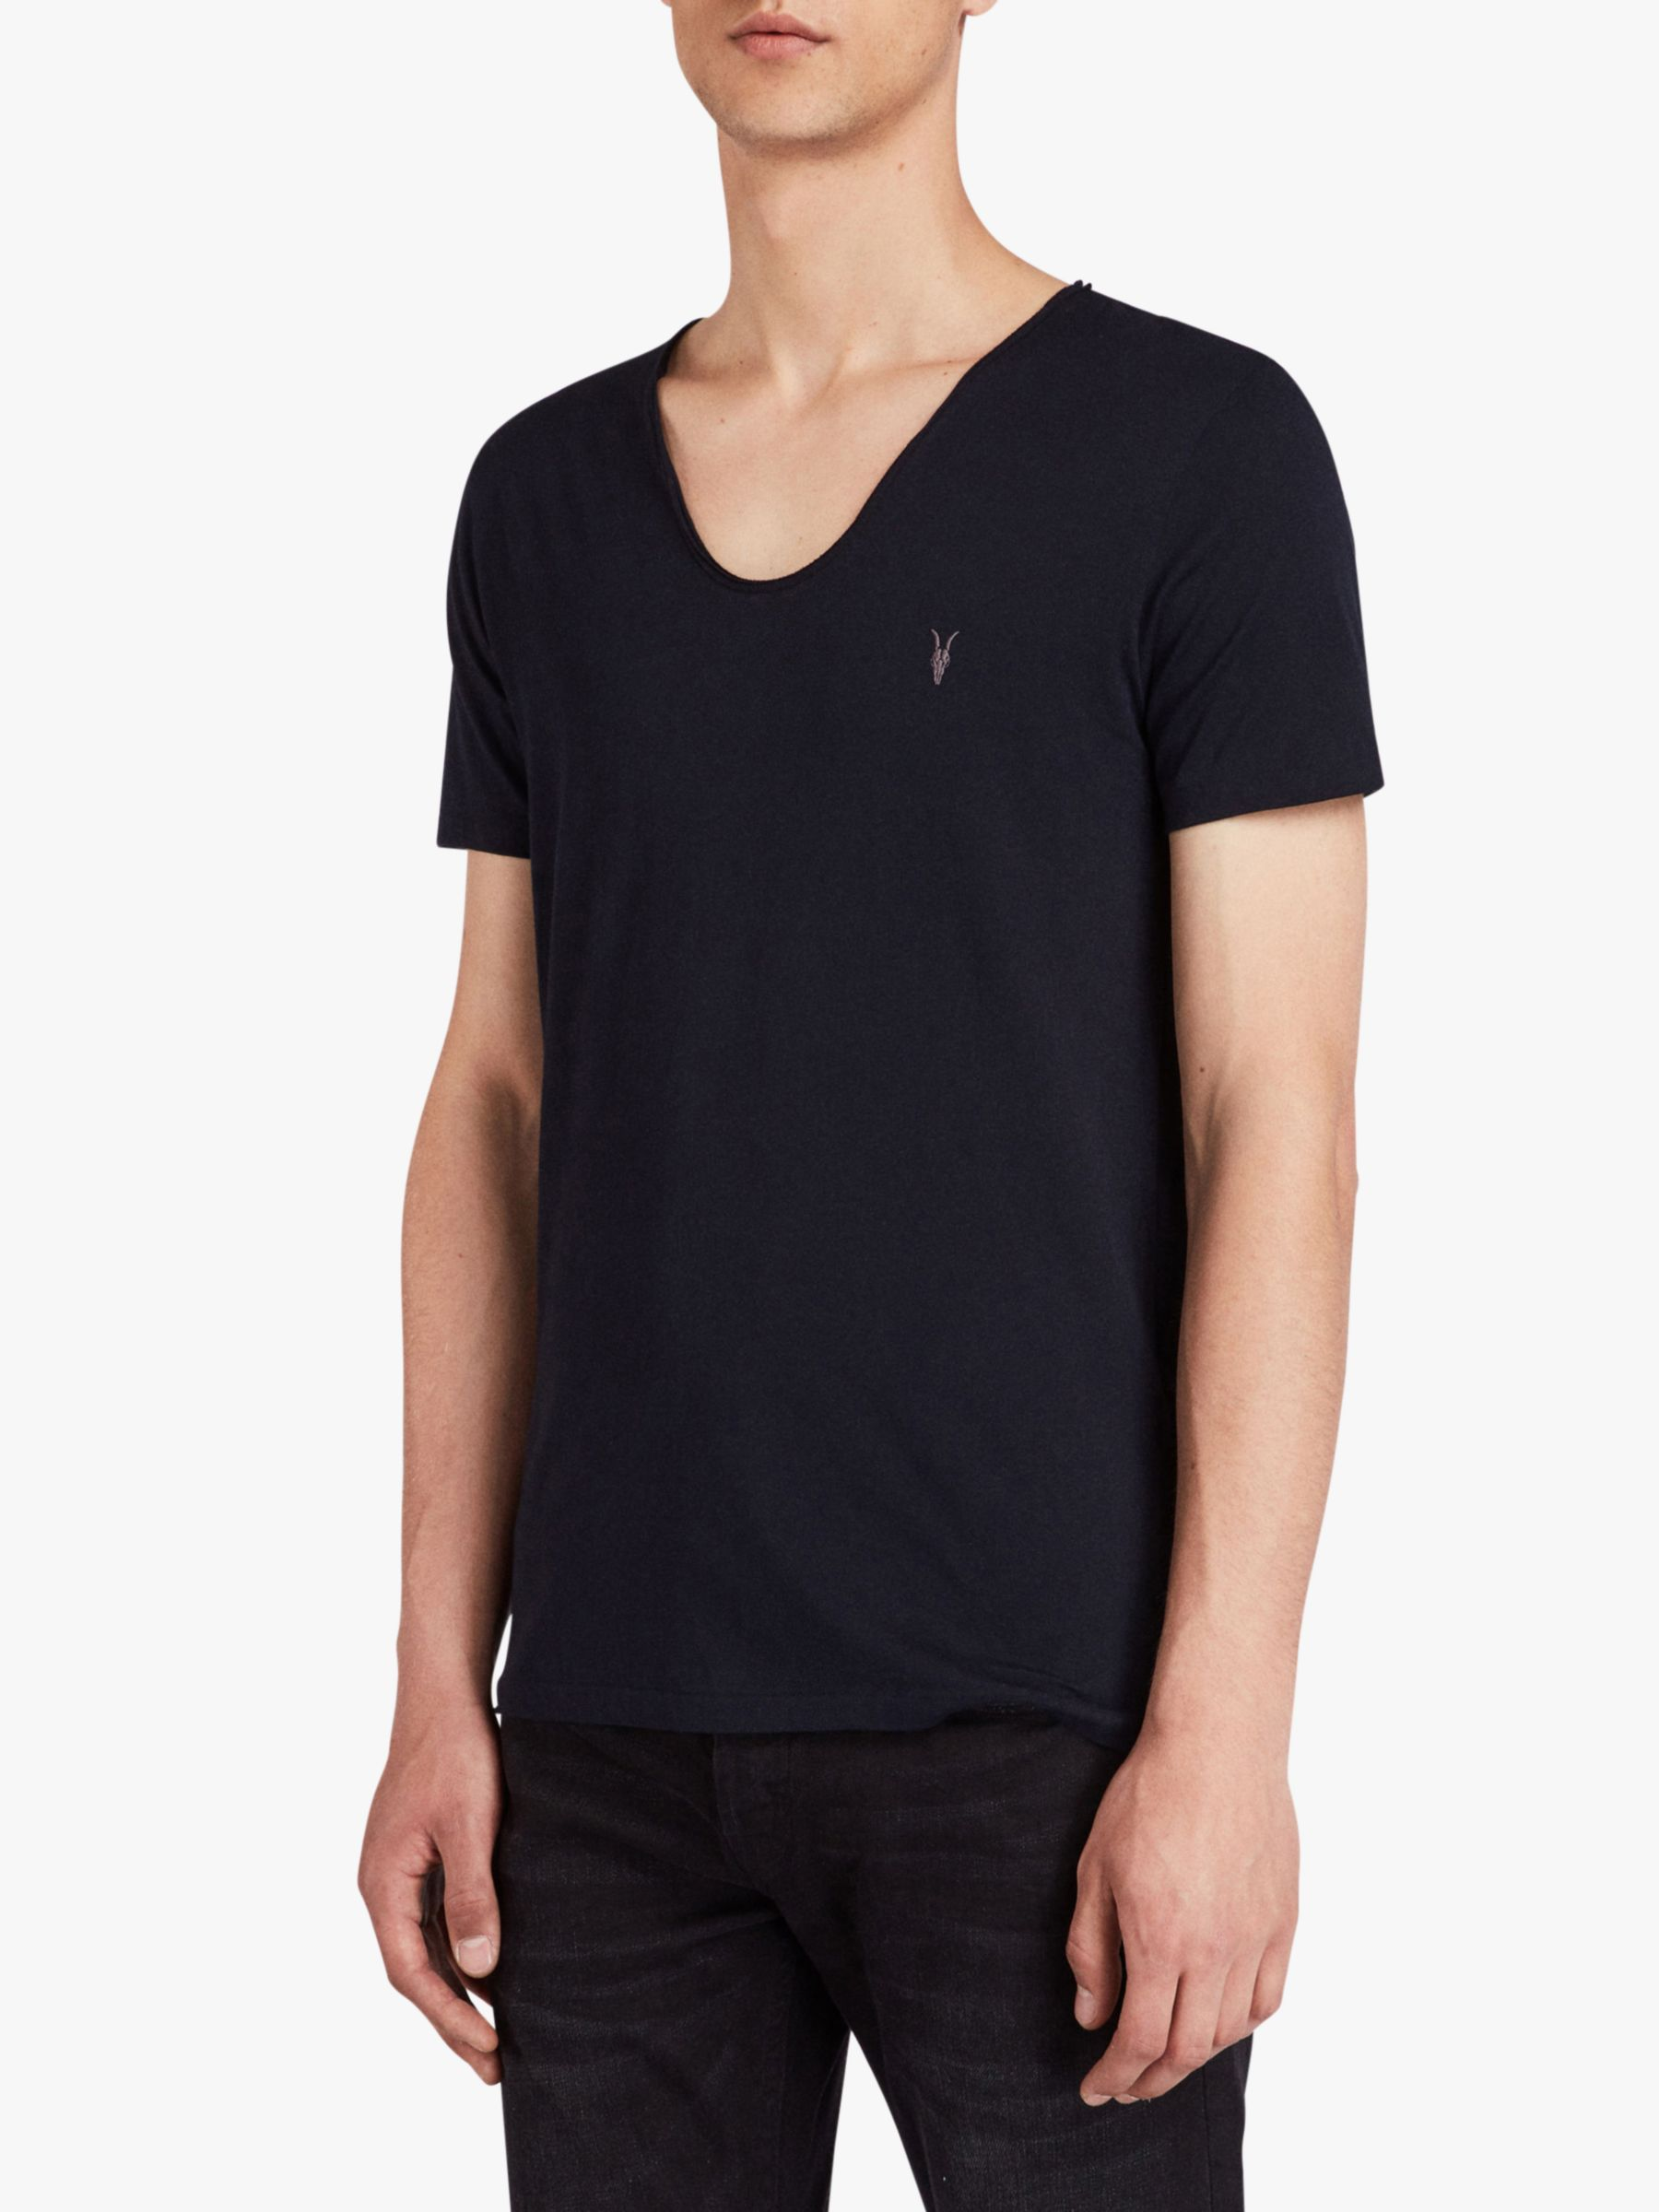 AllSaints AllSaints Tonic Scoop Neck T-Shirt